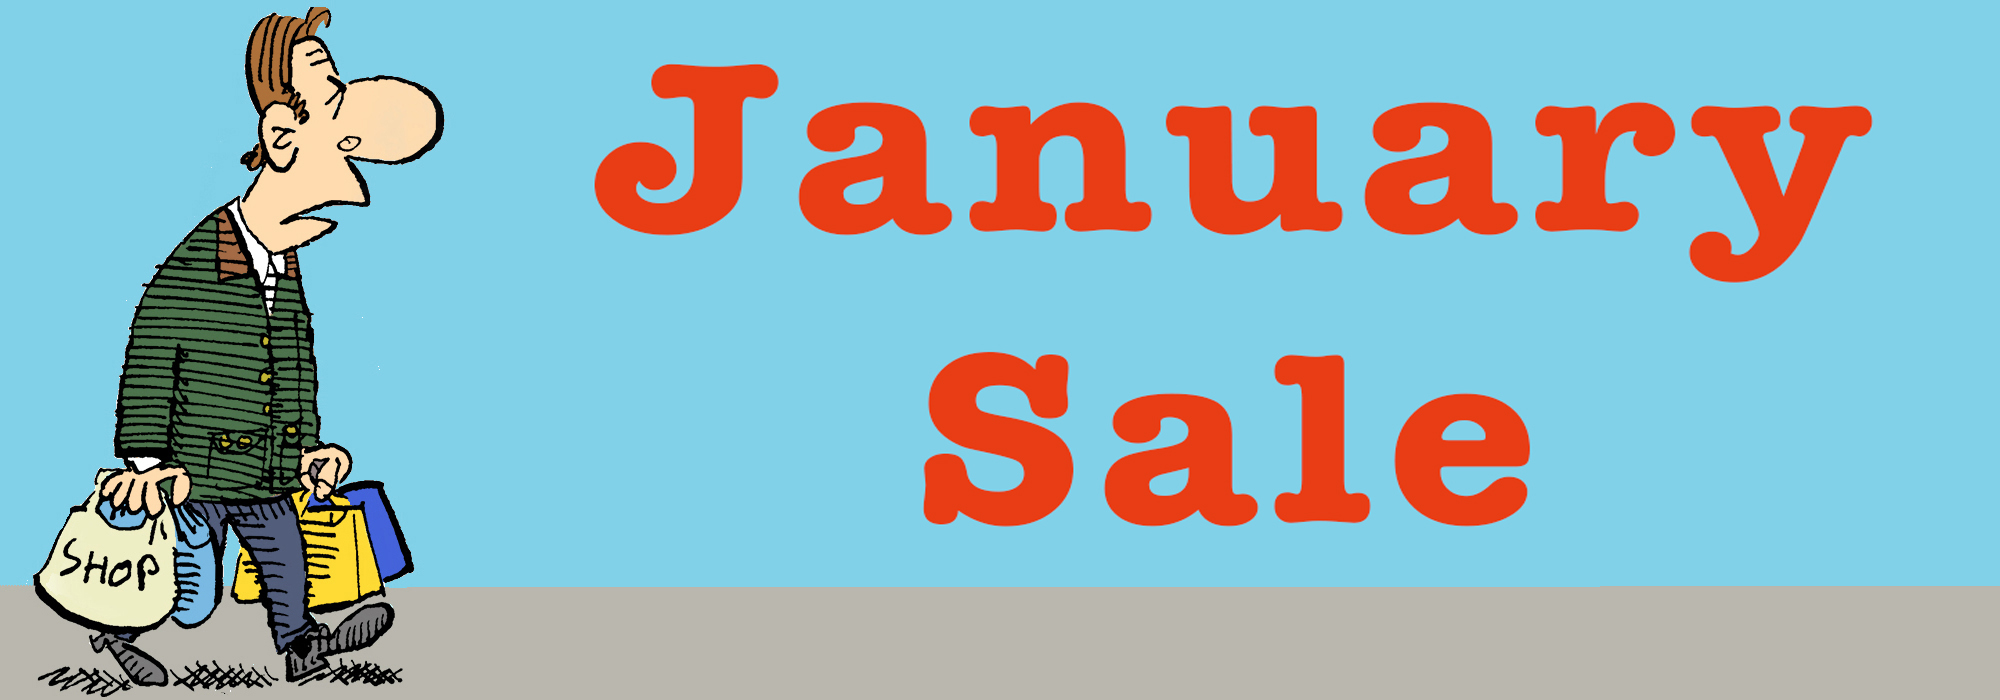 Alex January Sale